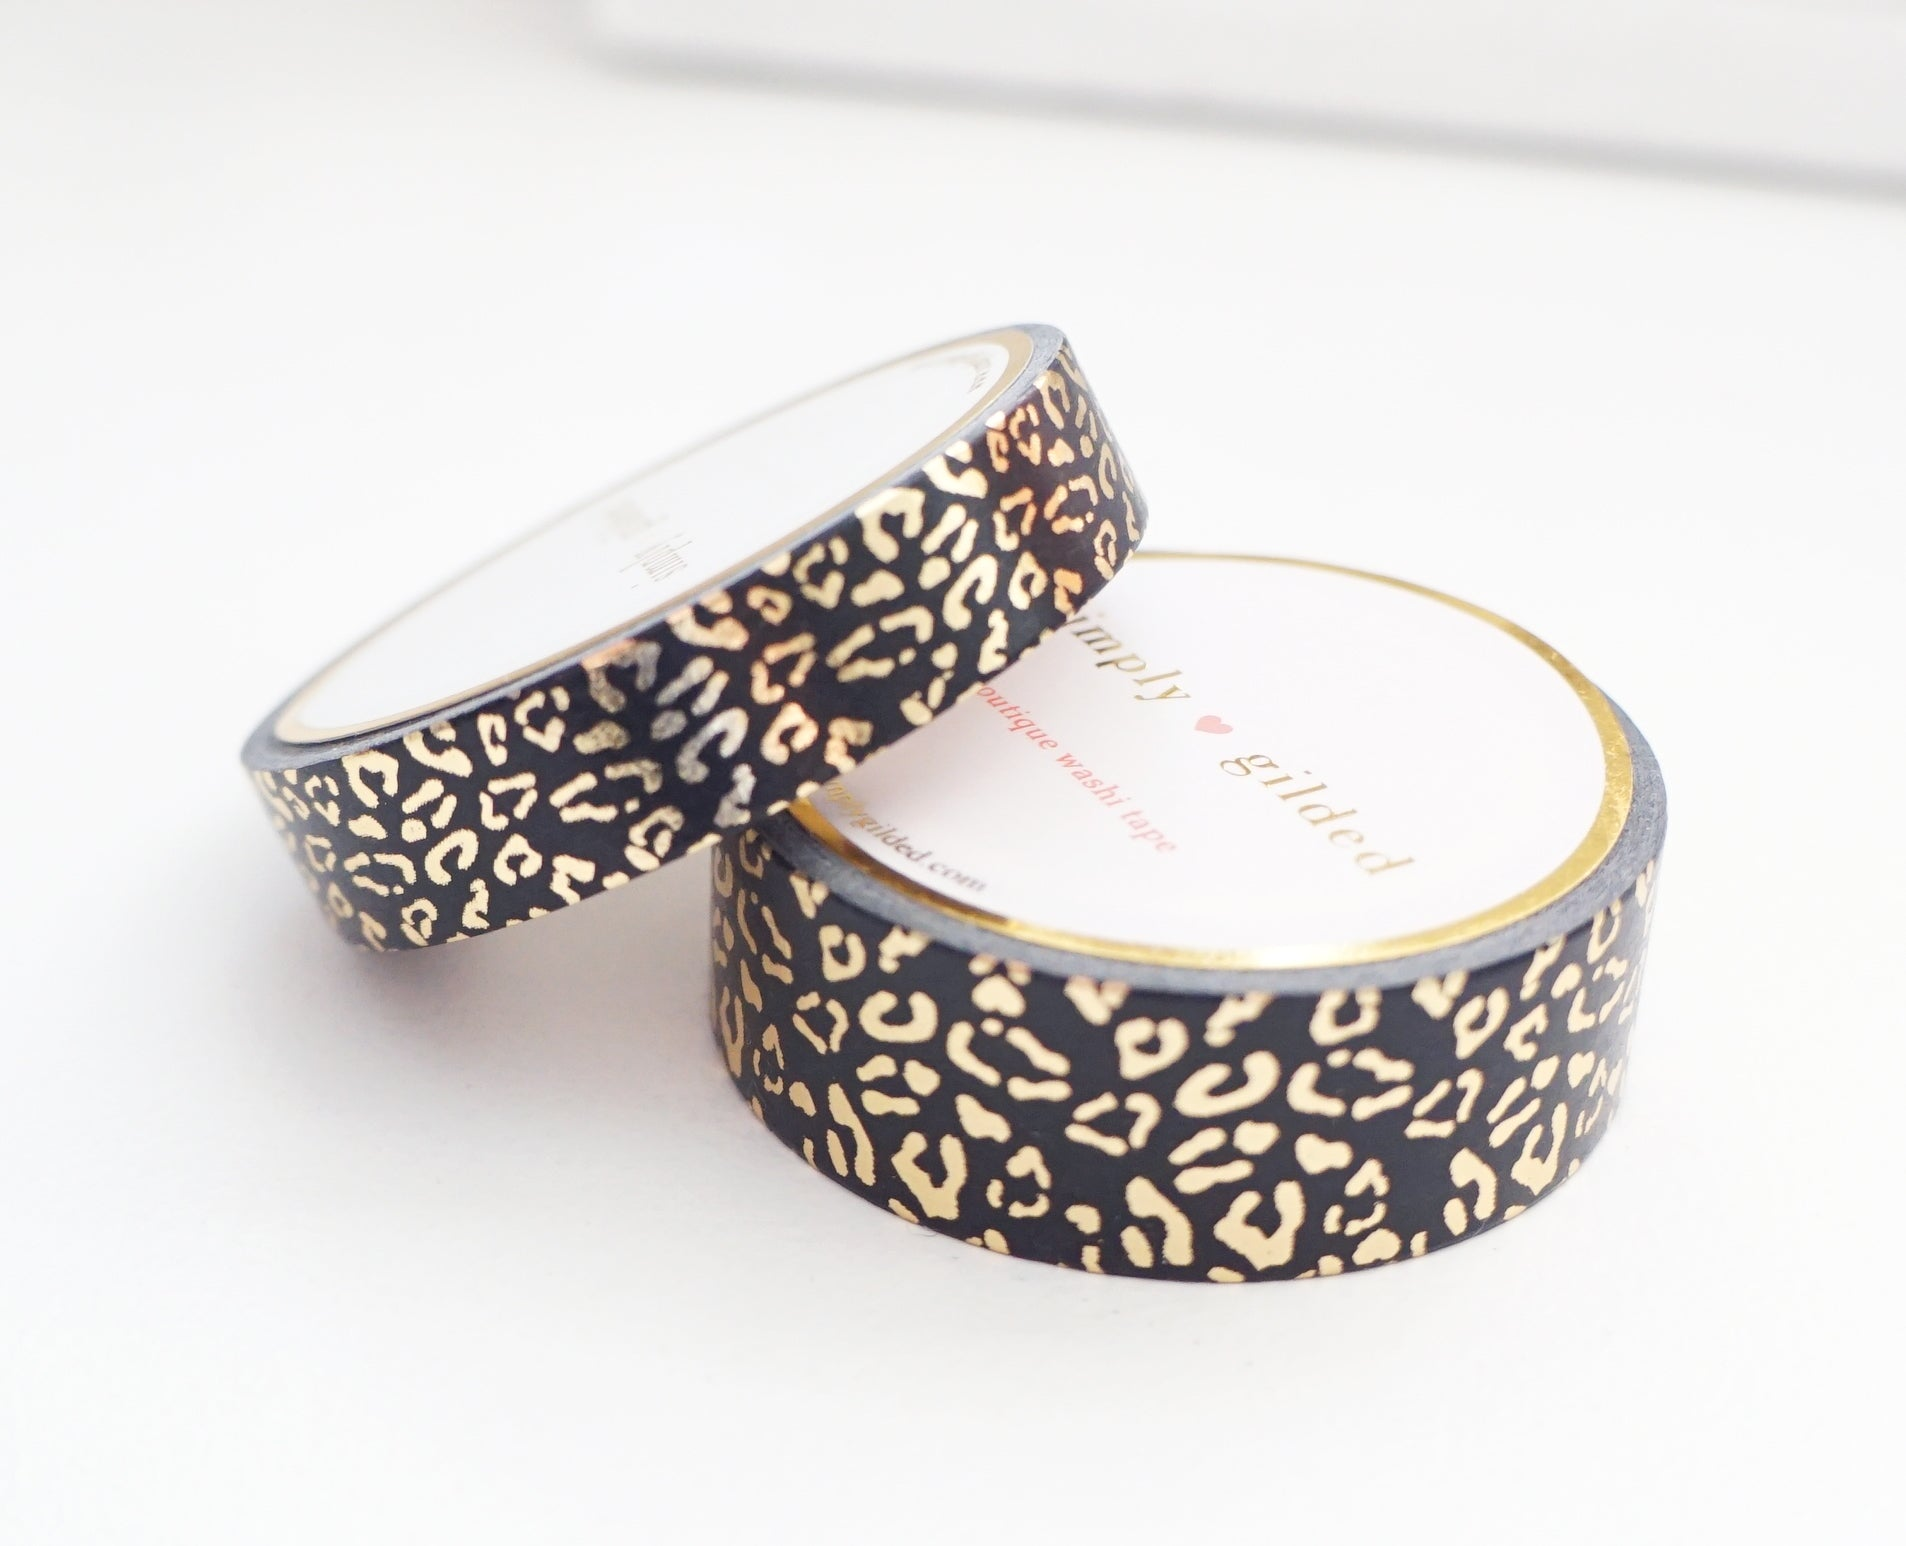 WASHI TAPE 15/10mm set - REGAL Leopard BLACK + champagne gold foil (Black Friday 19 Release)